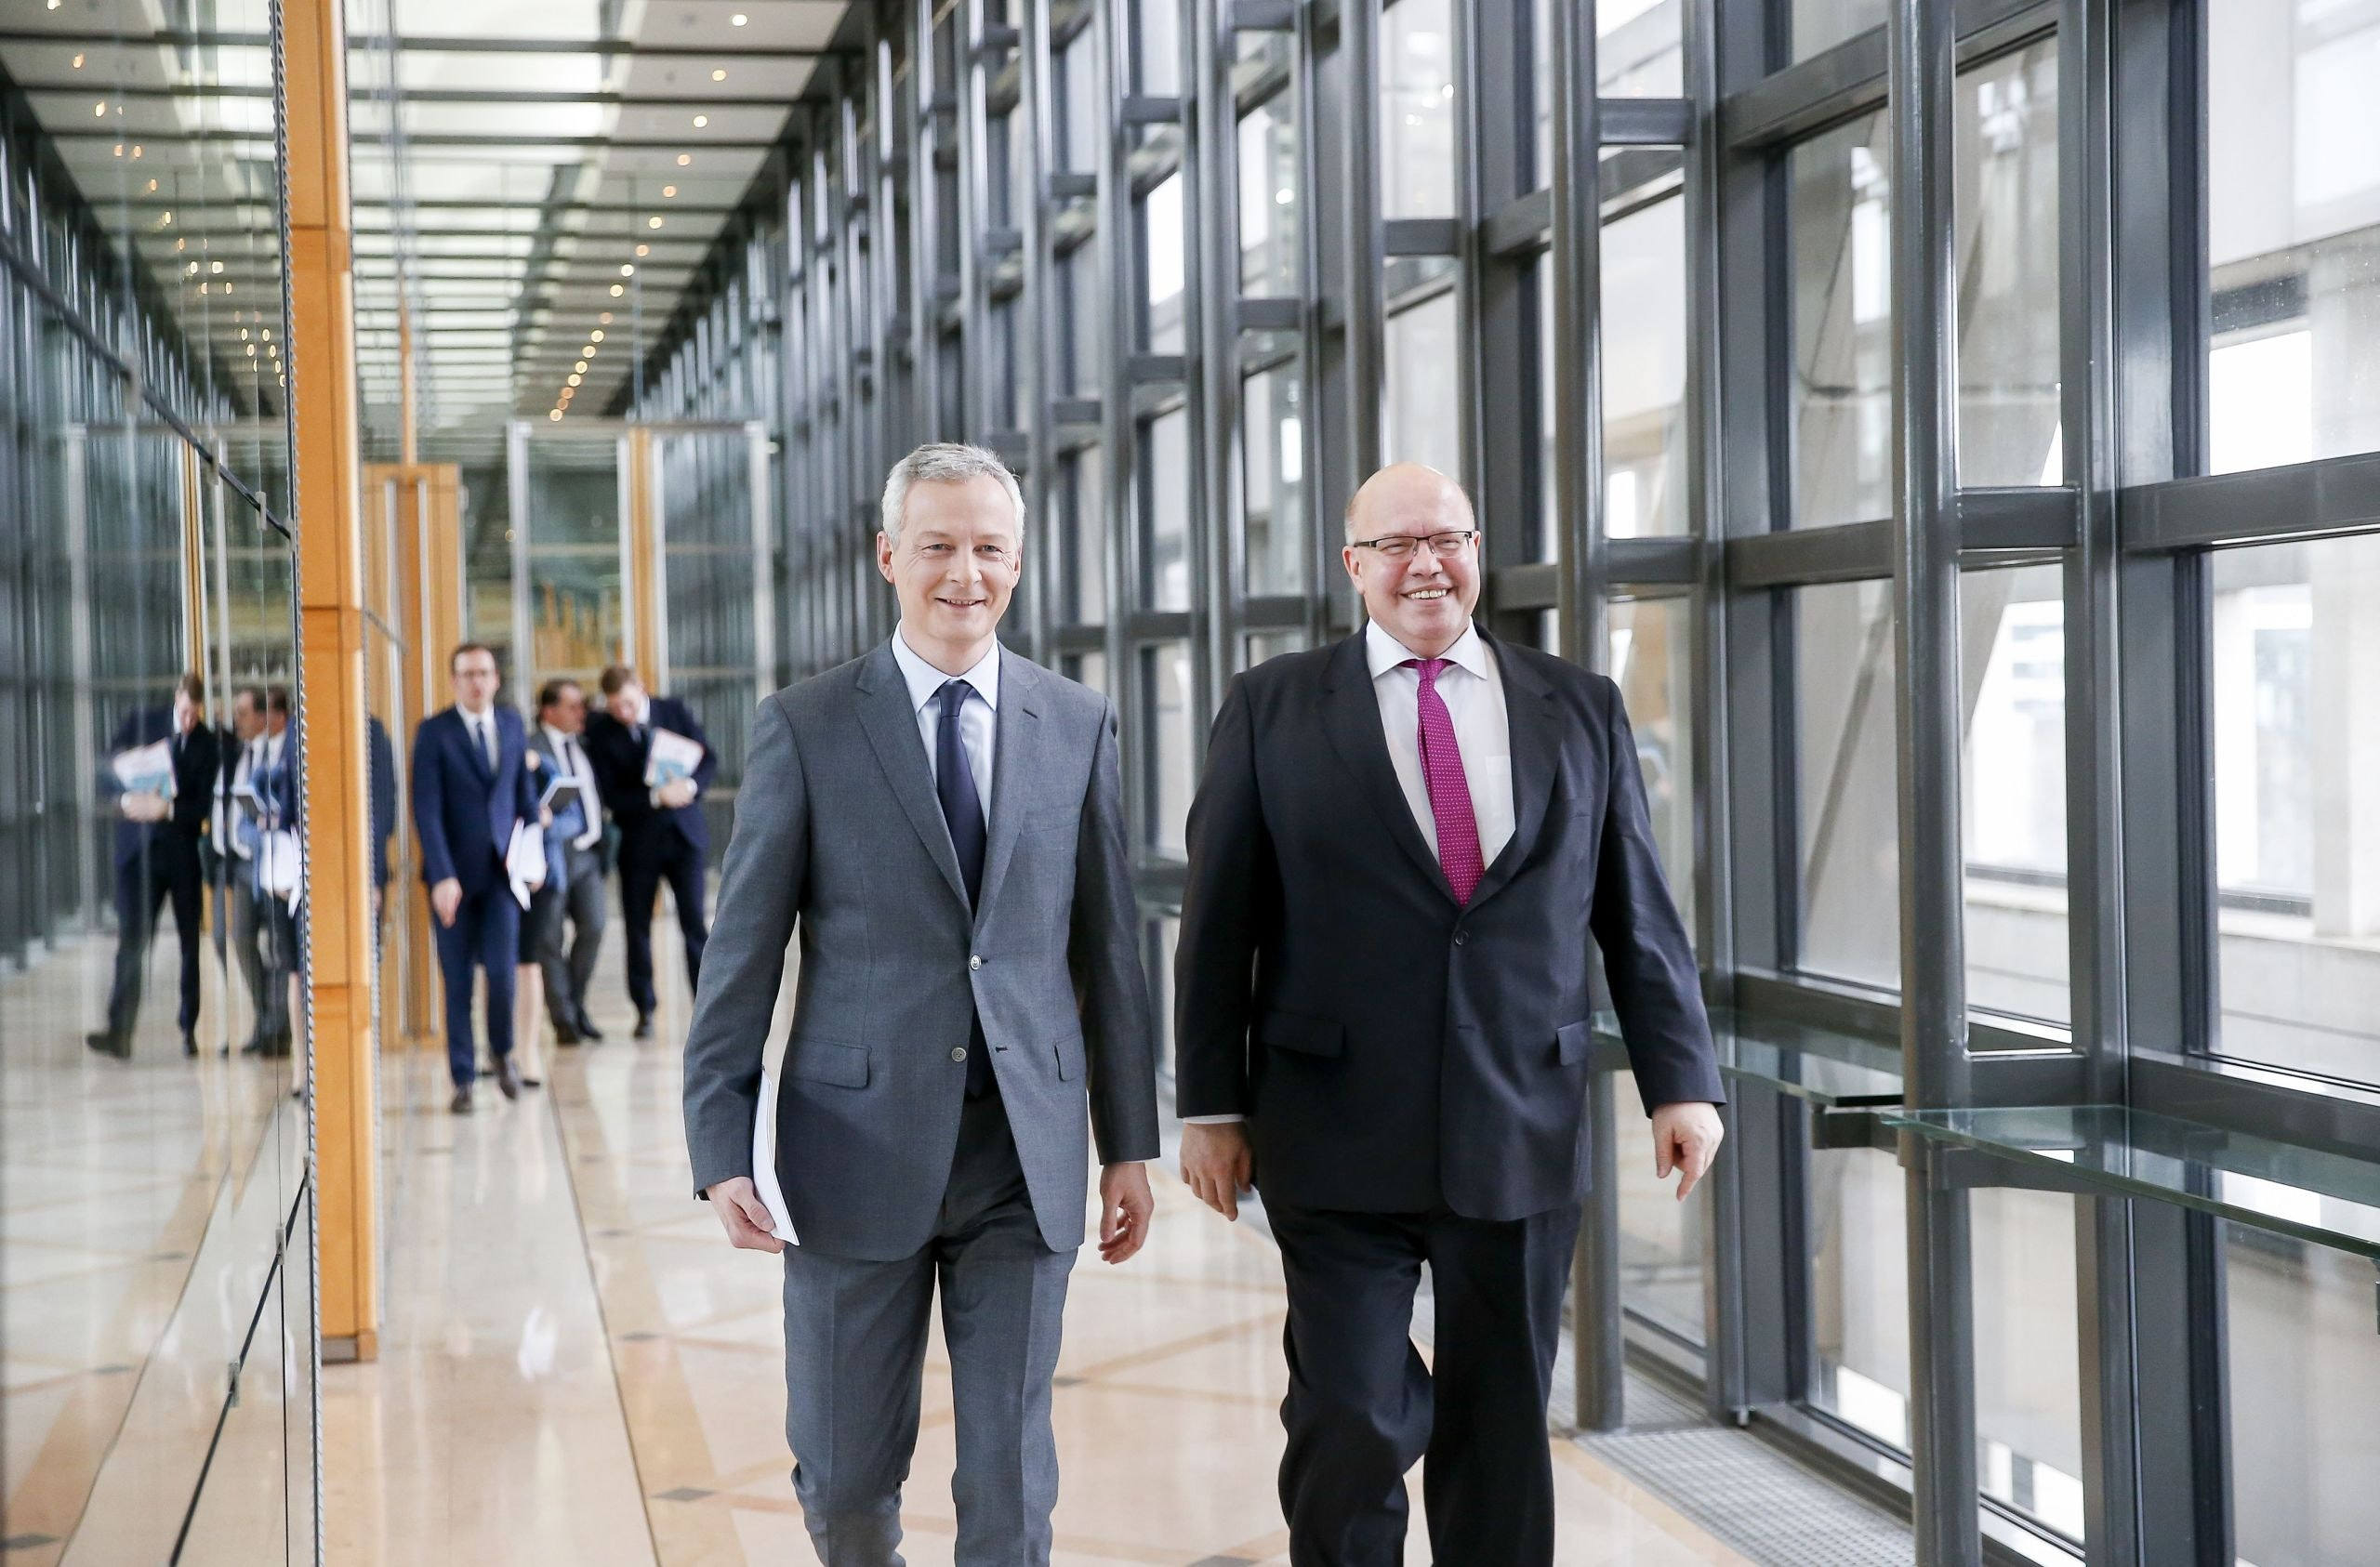 Mandatory Credit: Photo by Muylaert Sebastien/action press/REX/Shutterstock (9325993c) Bruno Le Maire, Peter Altmaier Bruno Le Maire and Germany's interim Finance Minister Peter Altmaier meet at the Economy Ministry, Paris, France - 18 Jan 2018